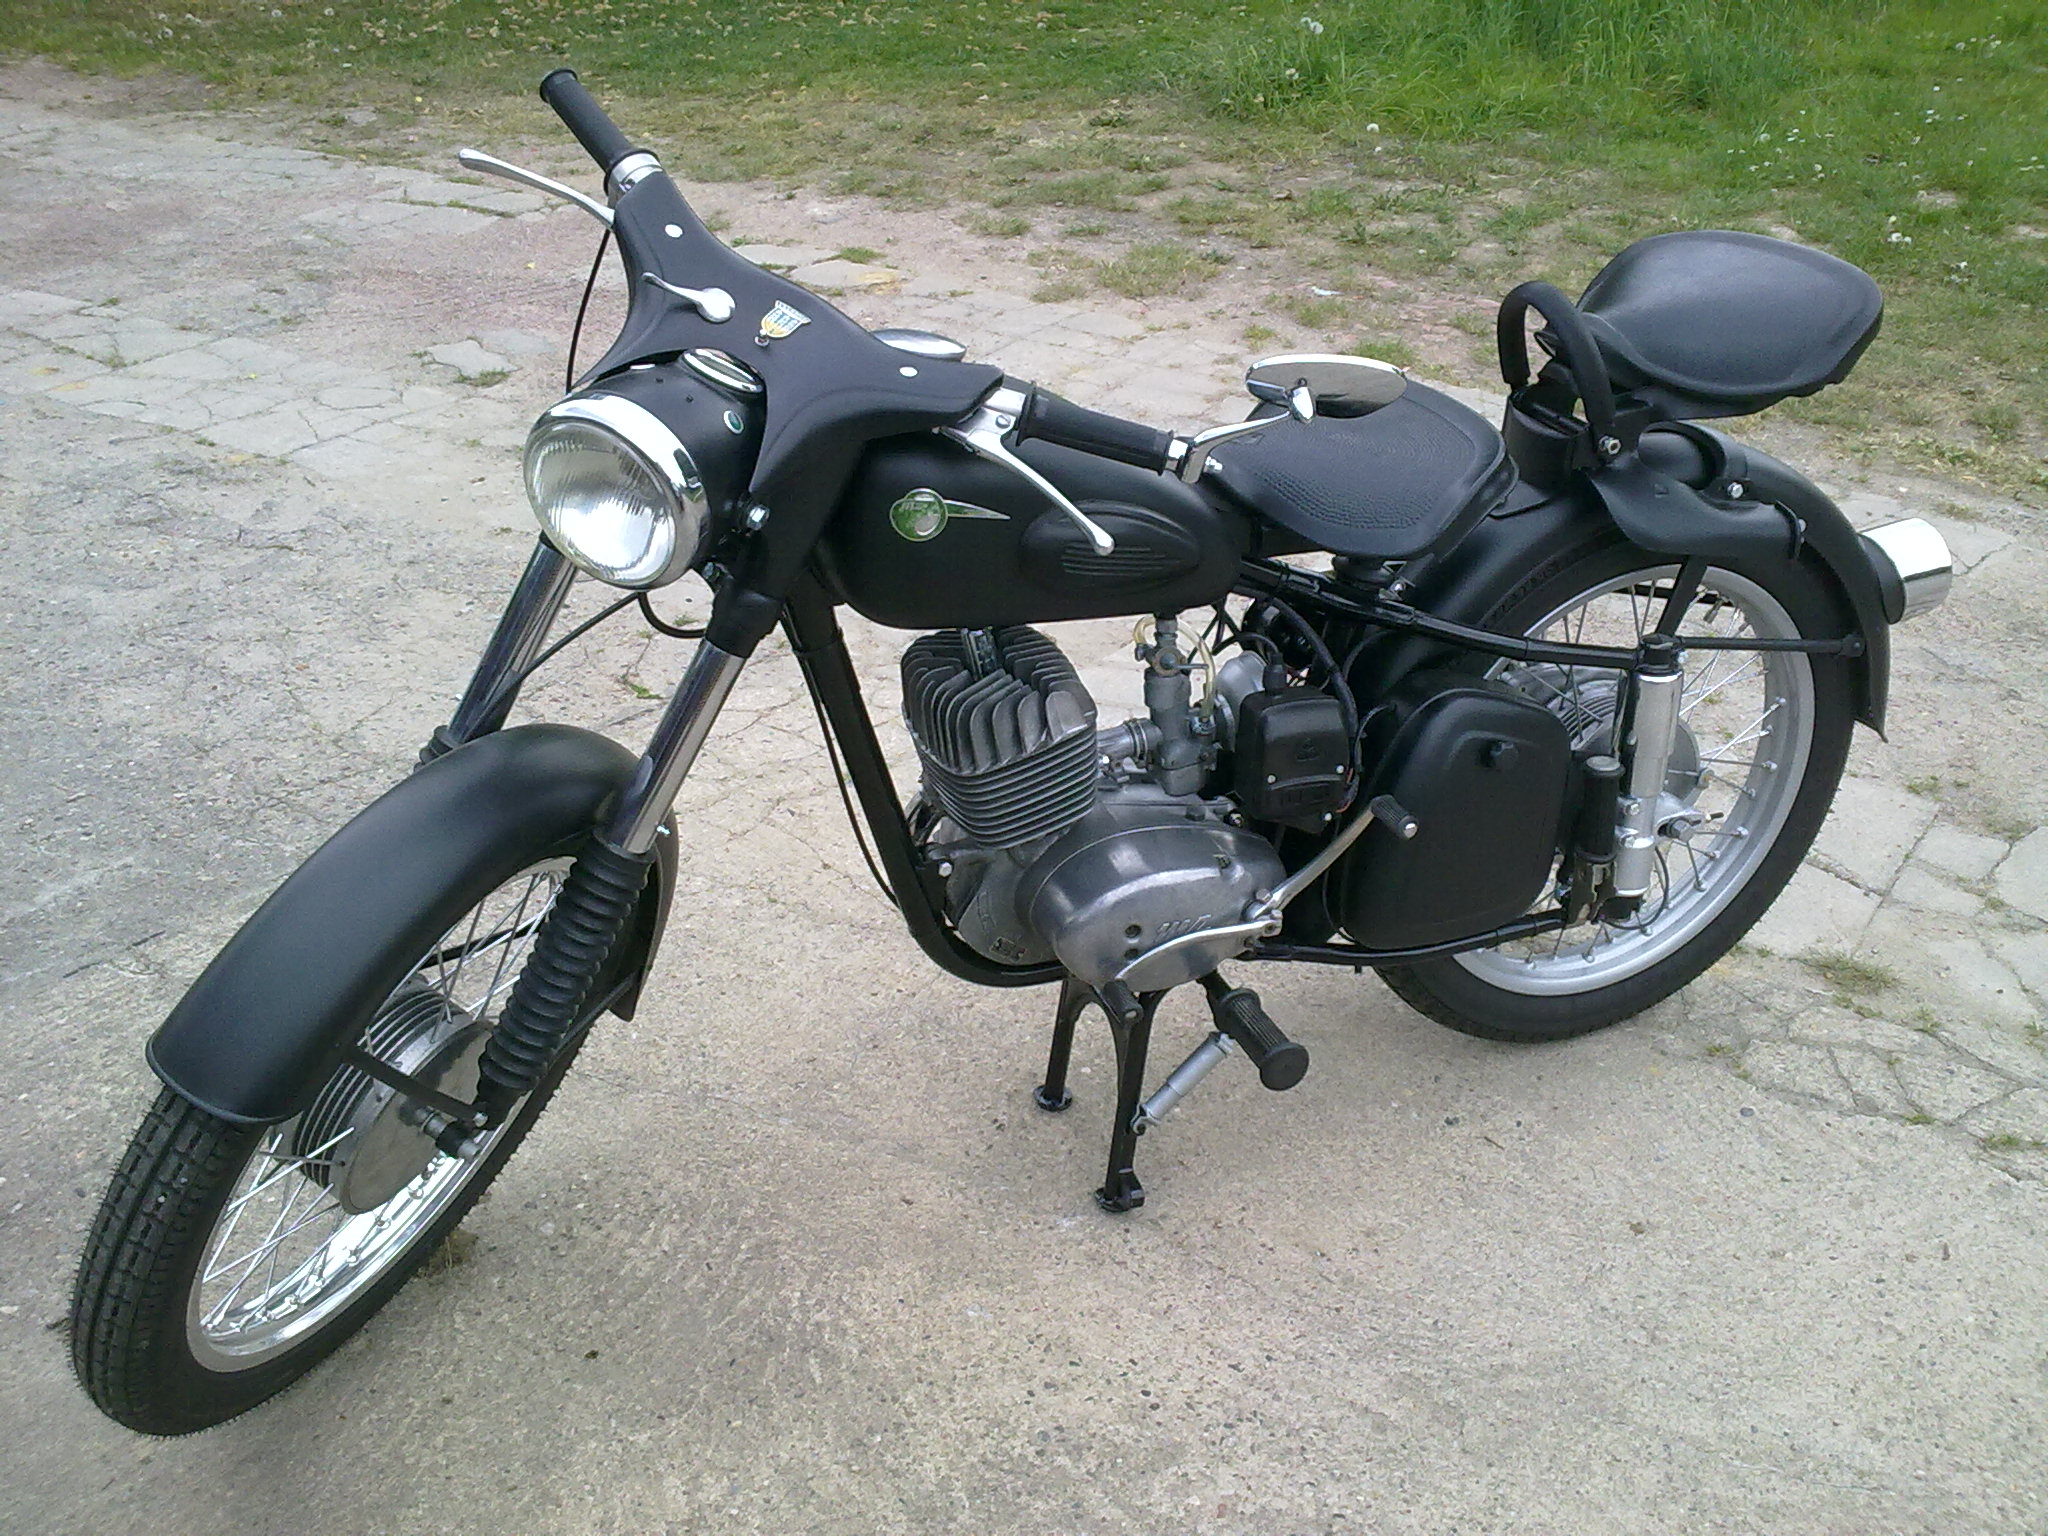 classic mz motorcycles mz motorcycle parts for sale. Black Bedroom Furniture Sets. Home Design Ideas